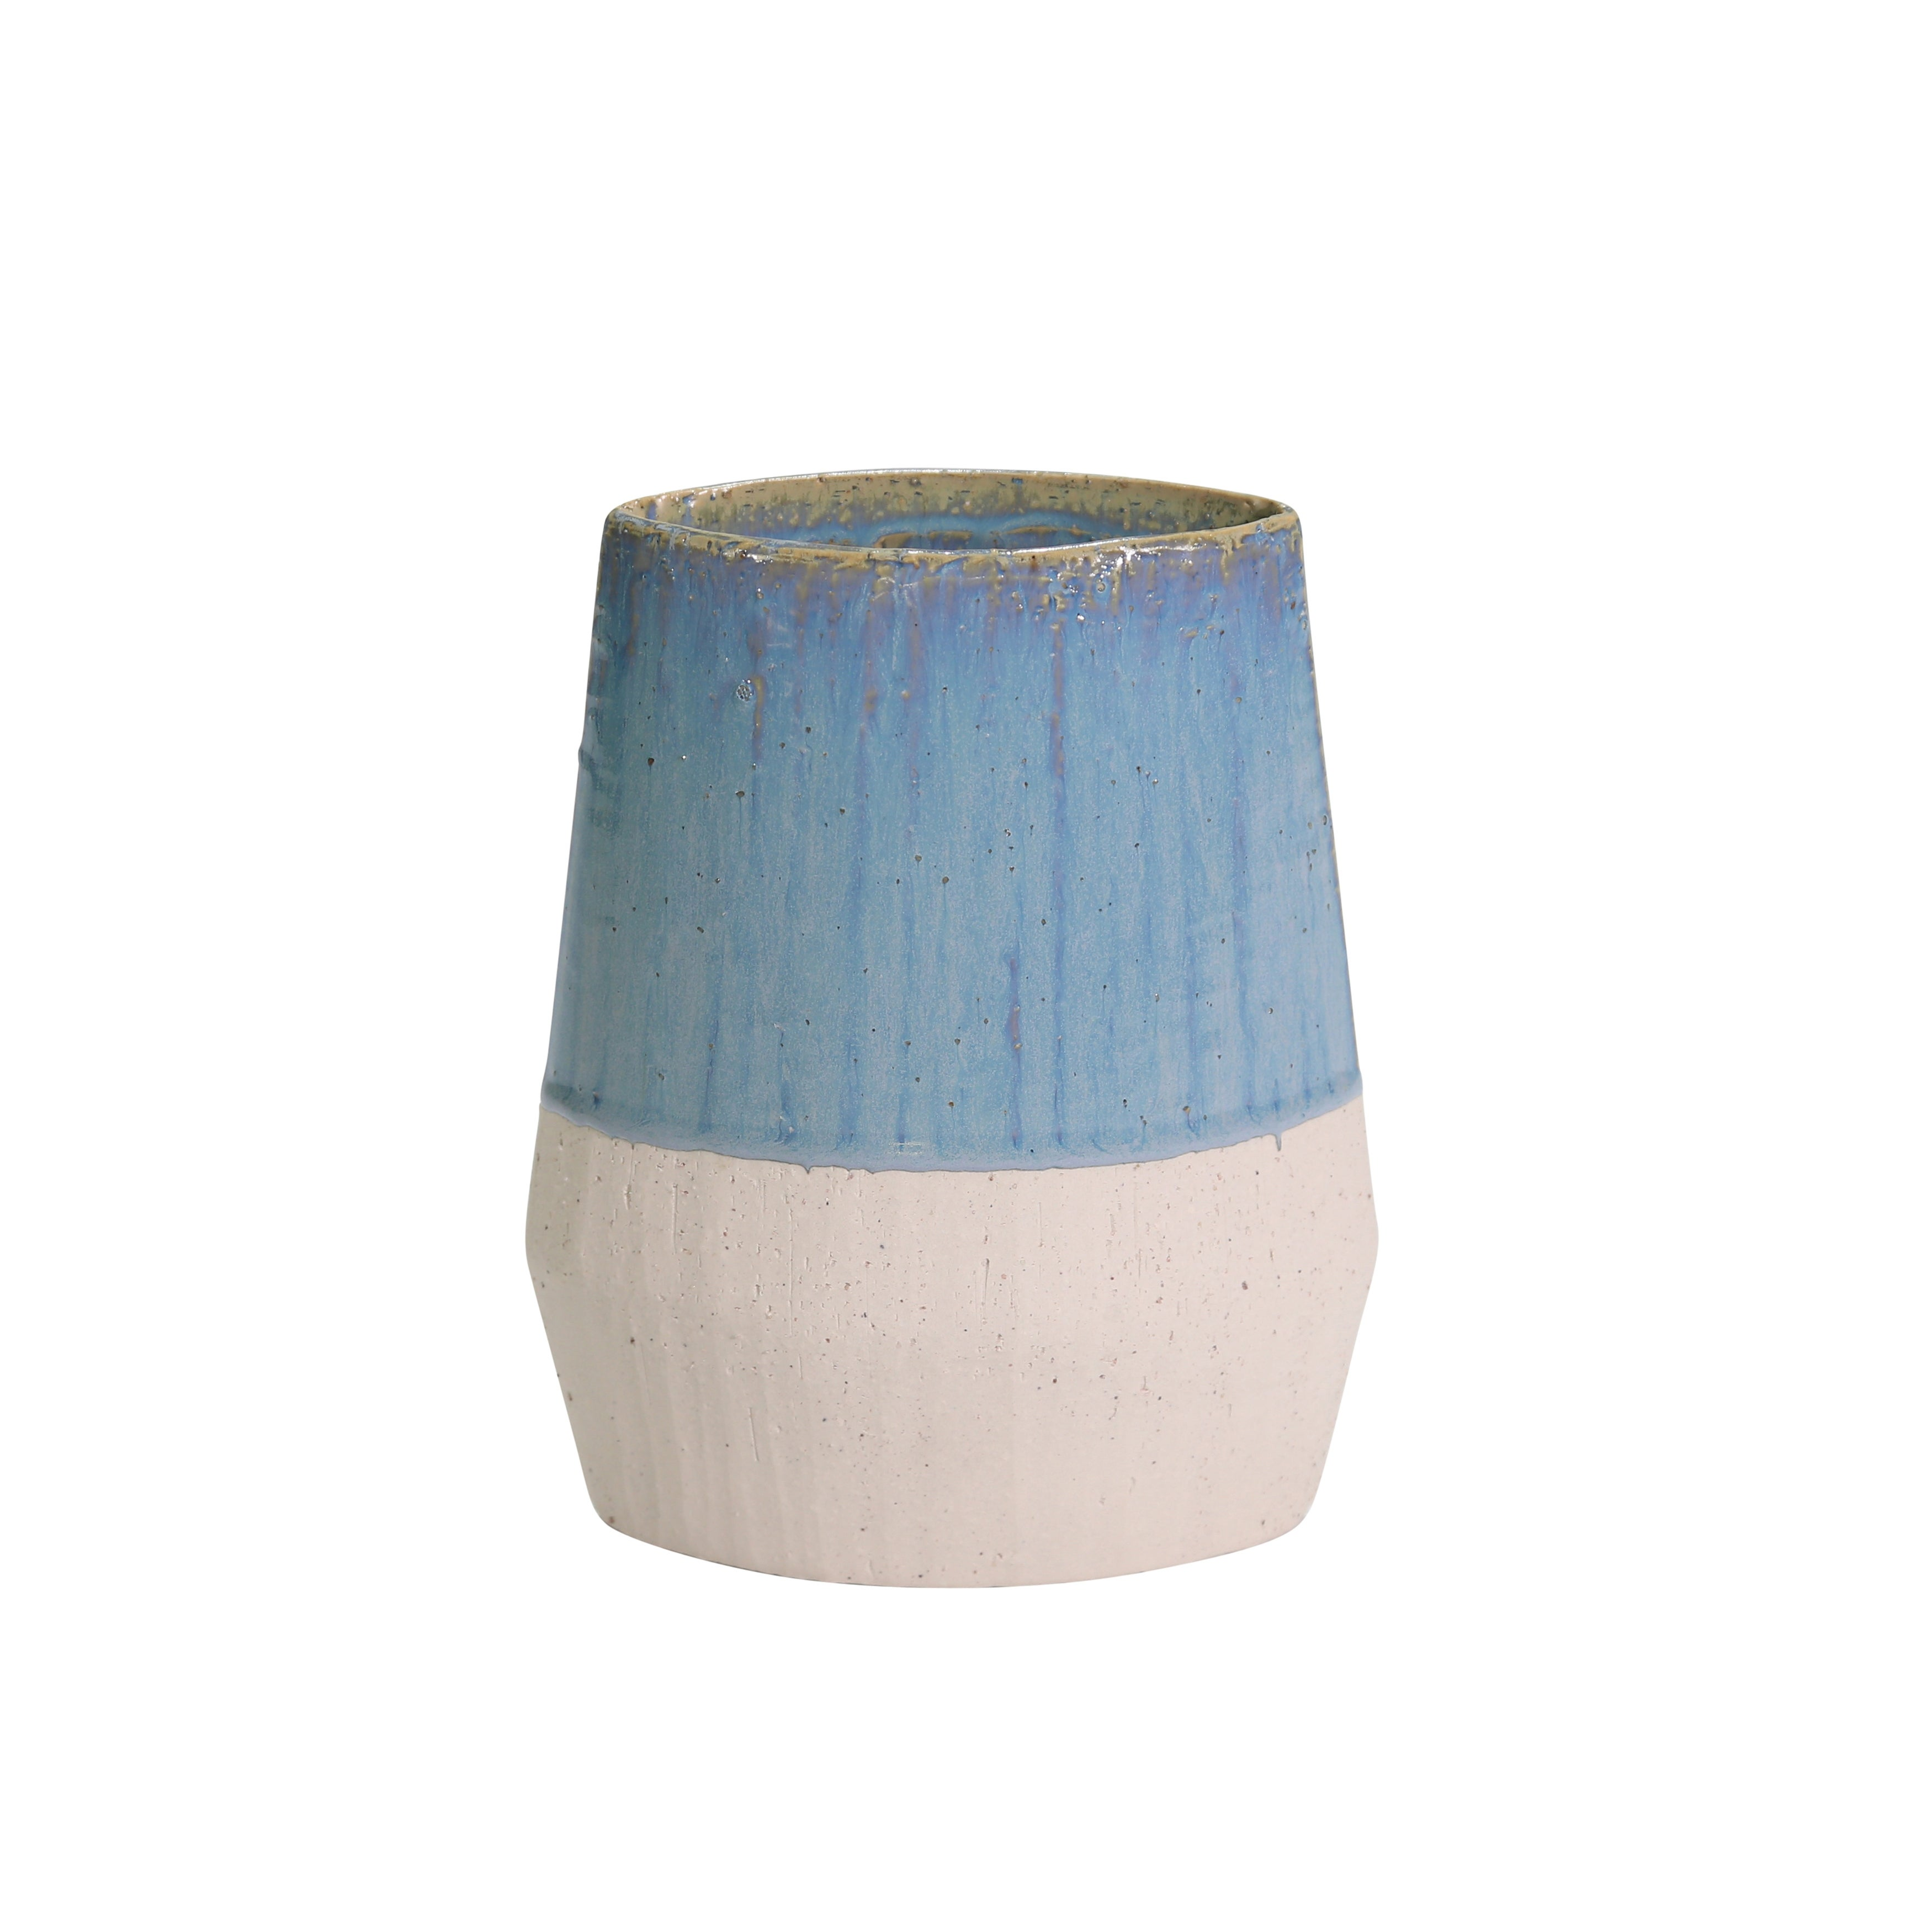 Dual Tone Decorative Ceramic Vase with Cylindrical Shape, Small, Blue and White